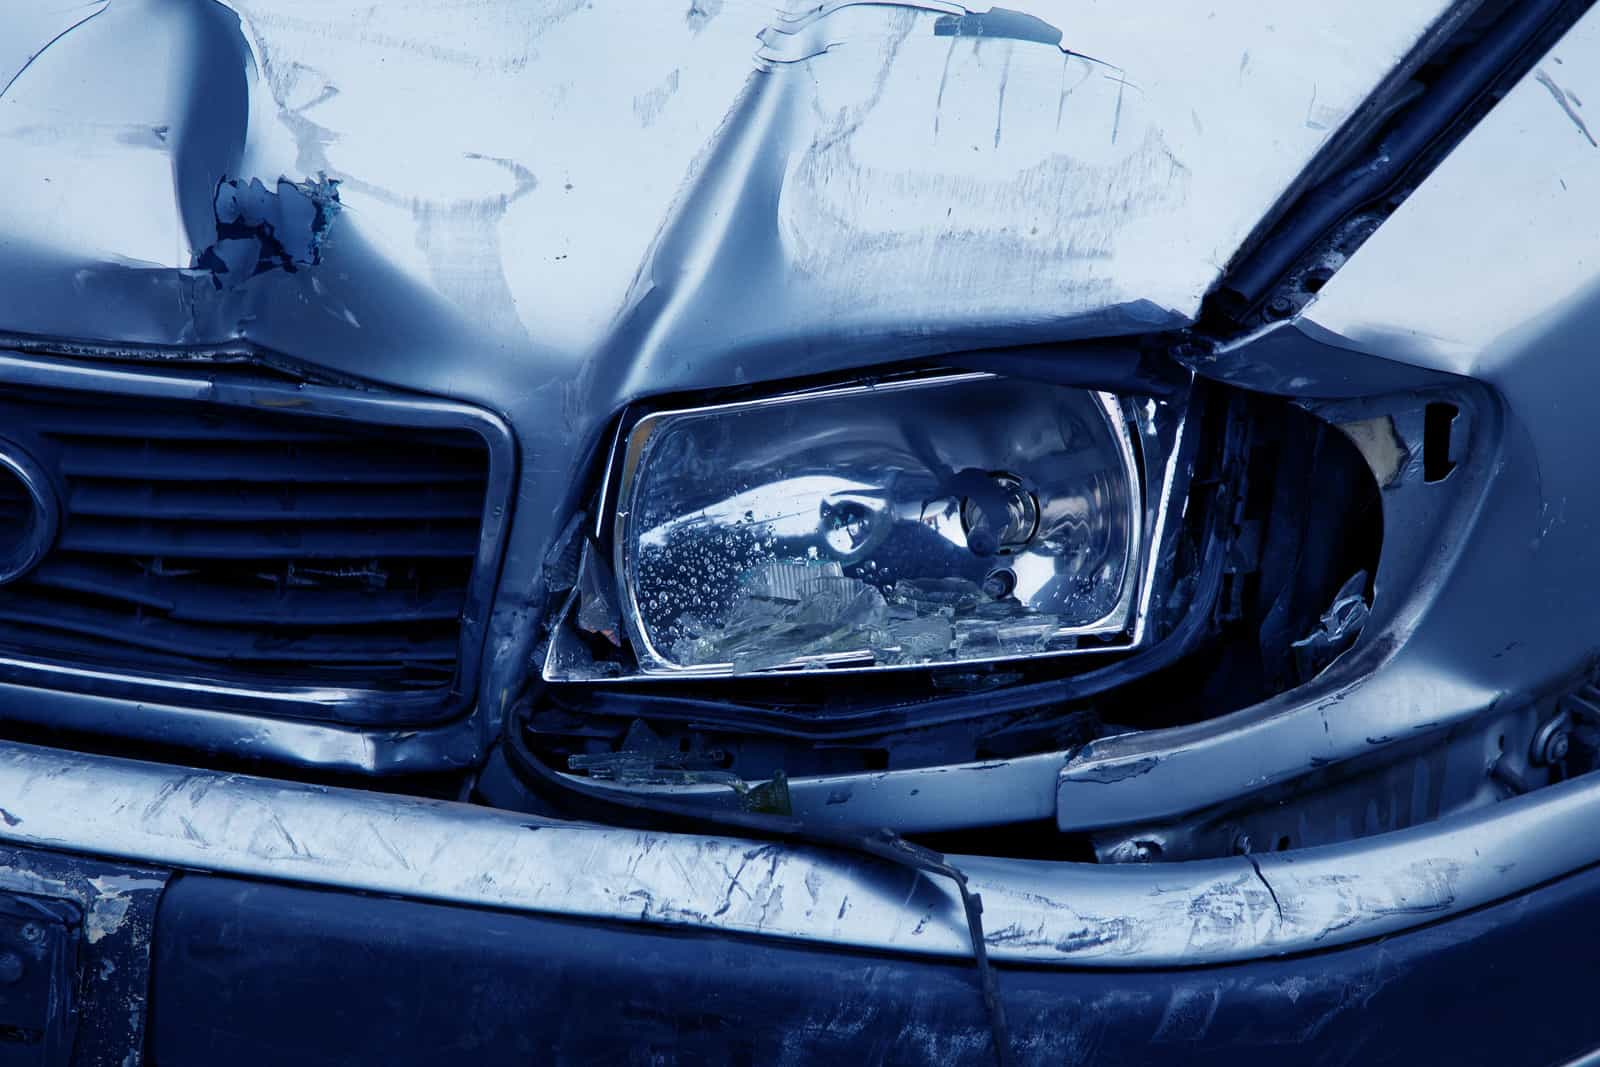 5 Things You Should Do Right After an Auto Accident